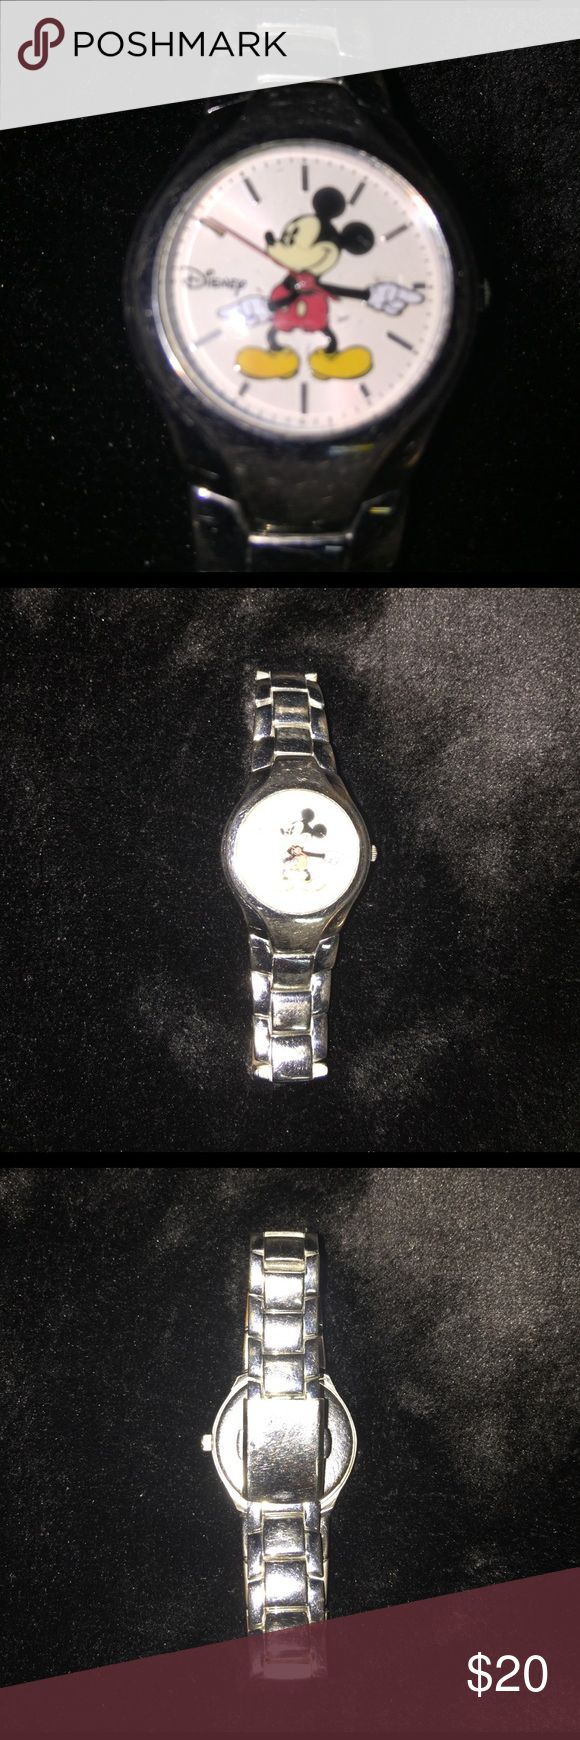 Mickey Mouse Watch Pre Loved Vintage Stainless Steel